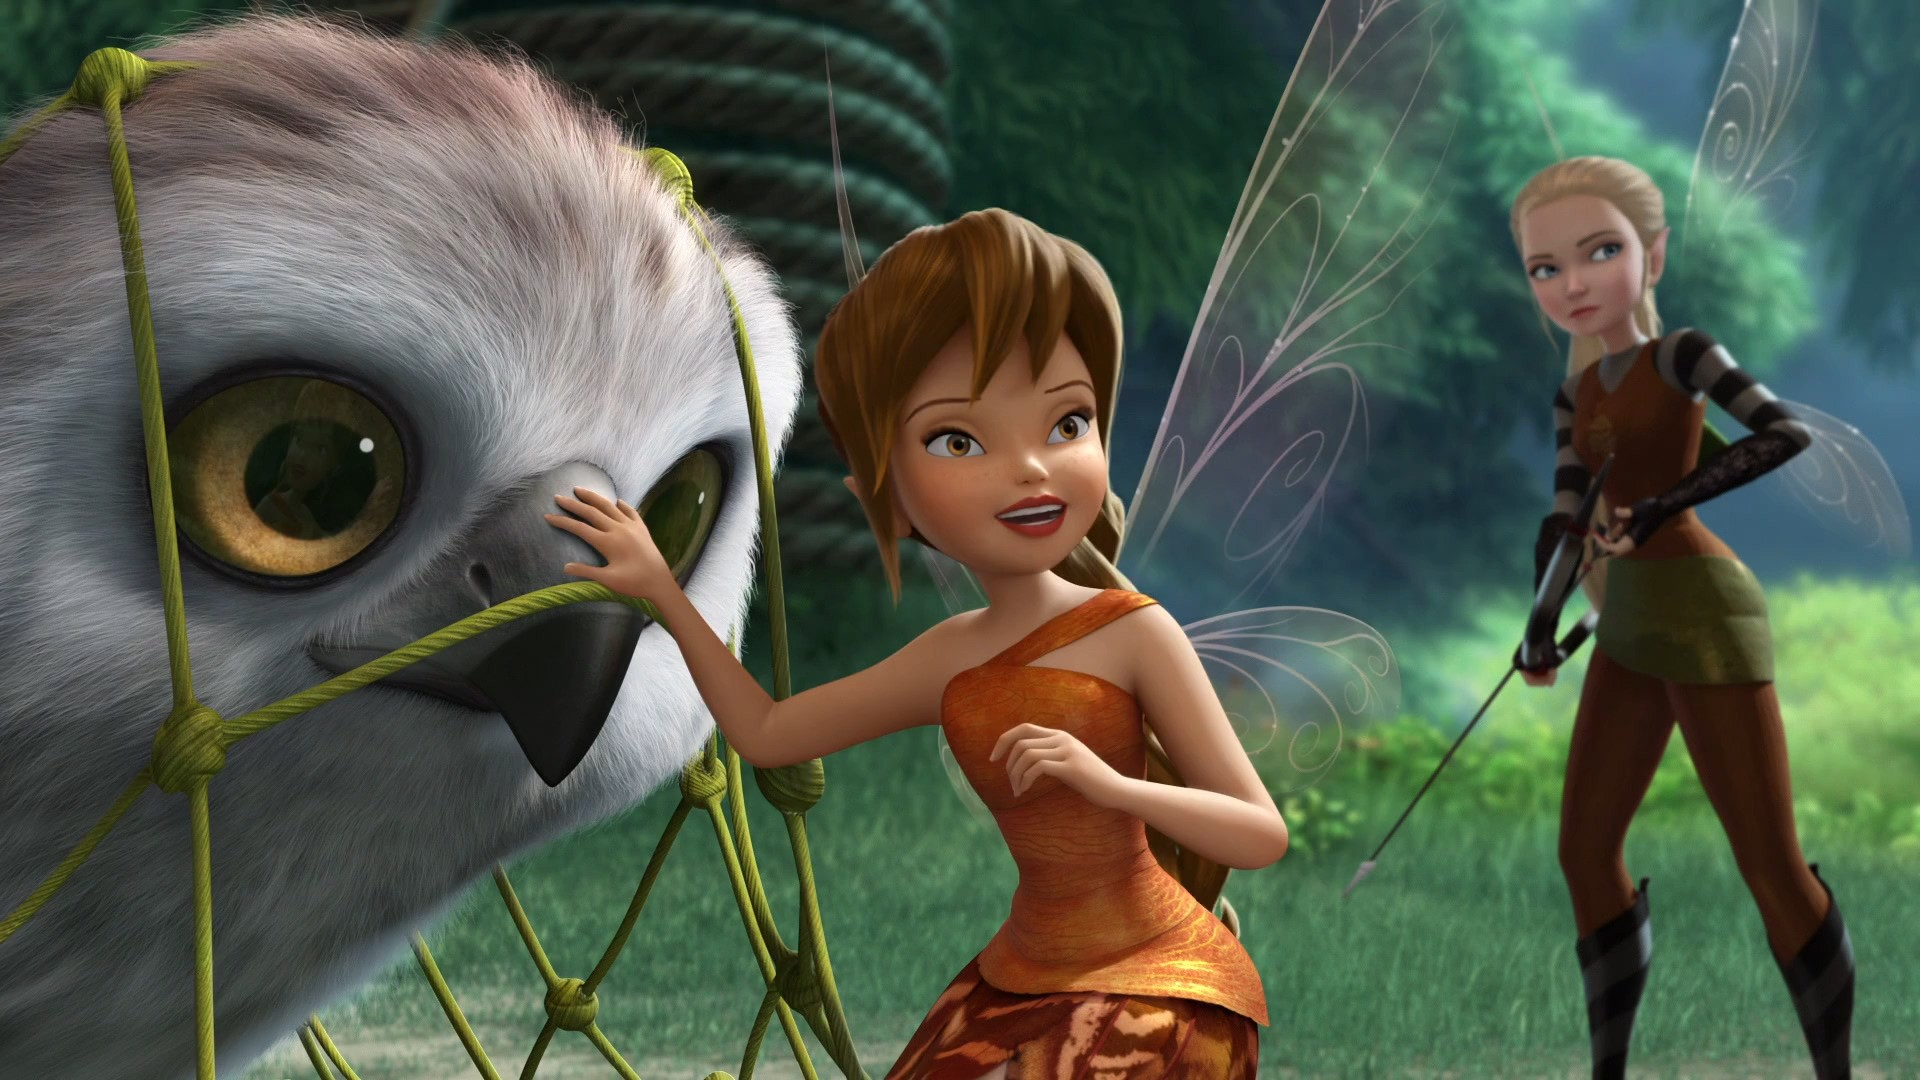 Res: 1920x1080, Tinker Bell and the Legend of the NeverBeast Wallpapers 15 - 1920 X 1080